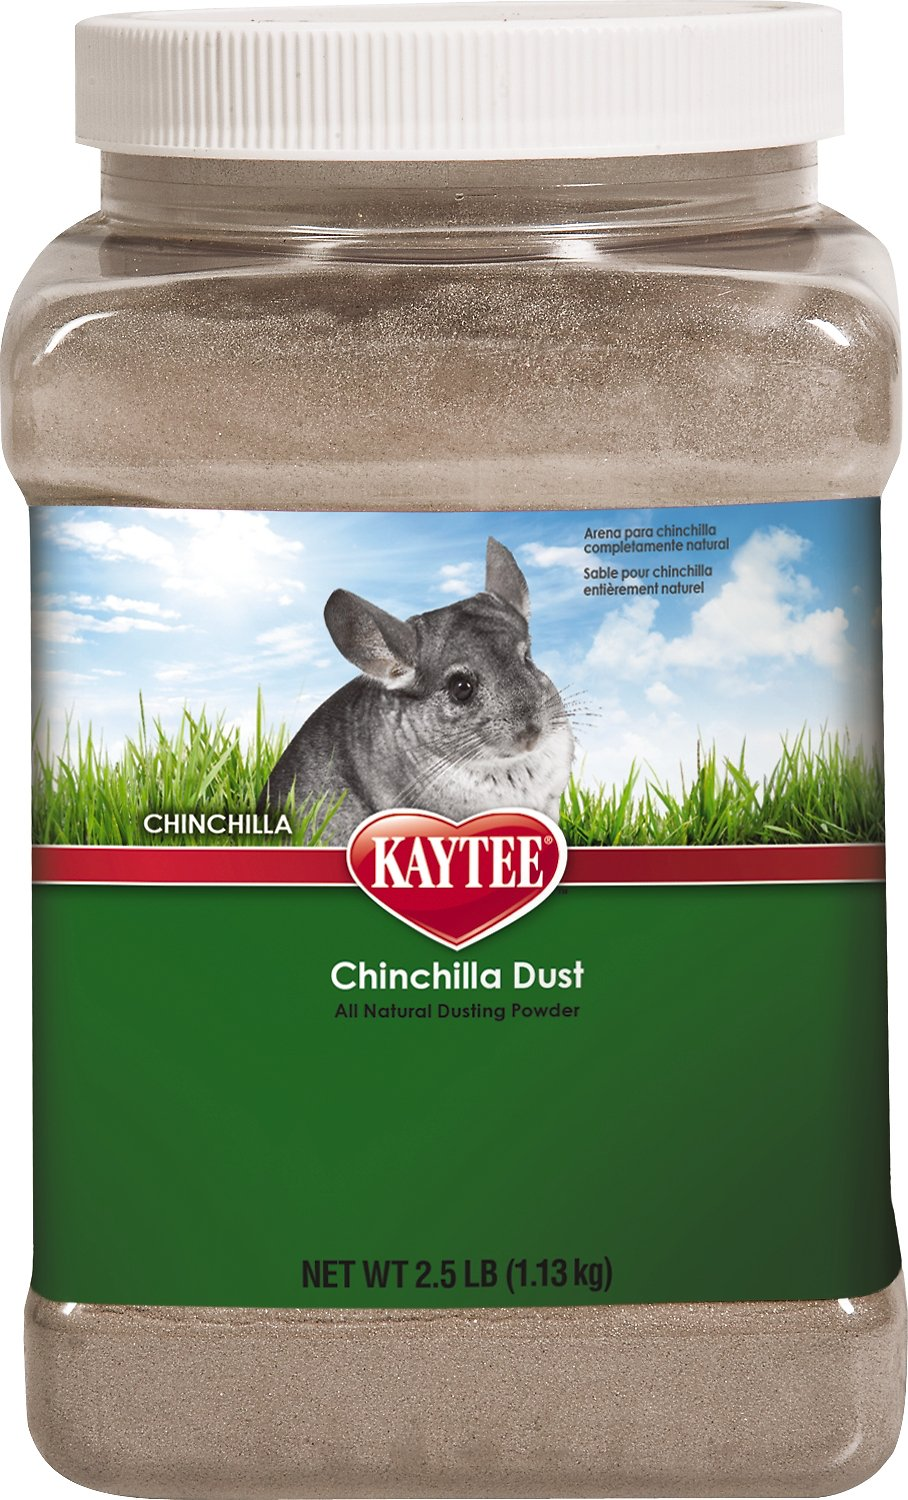 Kaytee Chinchilla Dust Bath, 2.5-lb jar Image